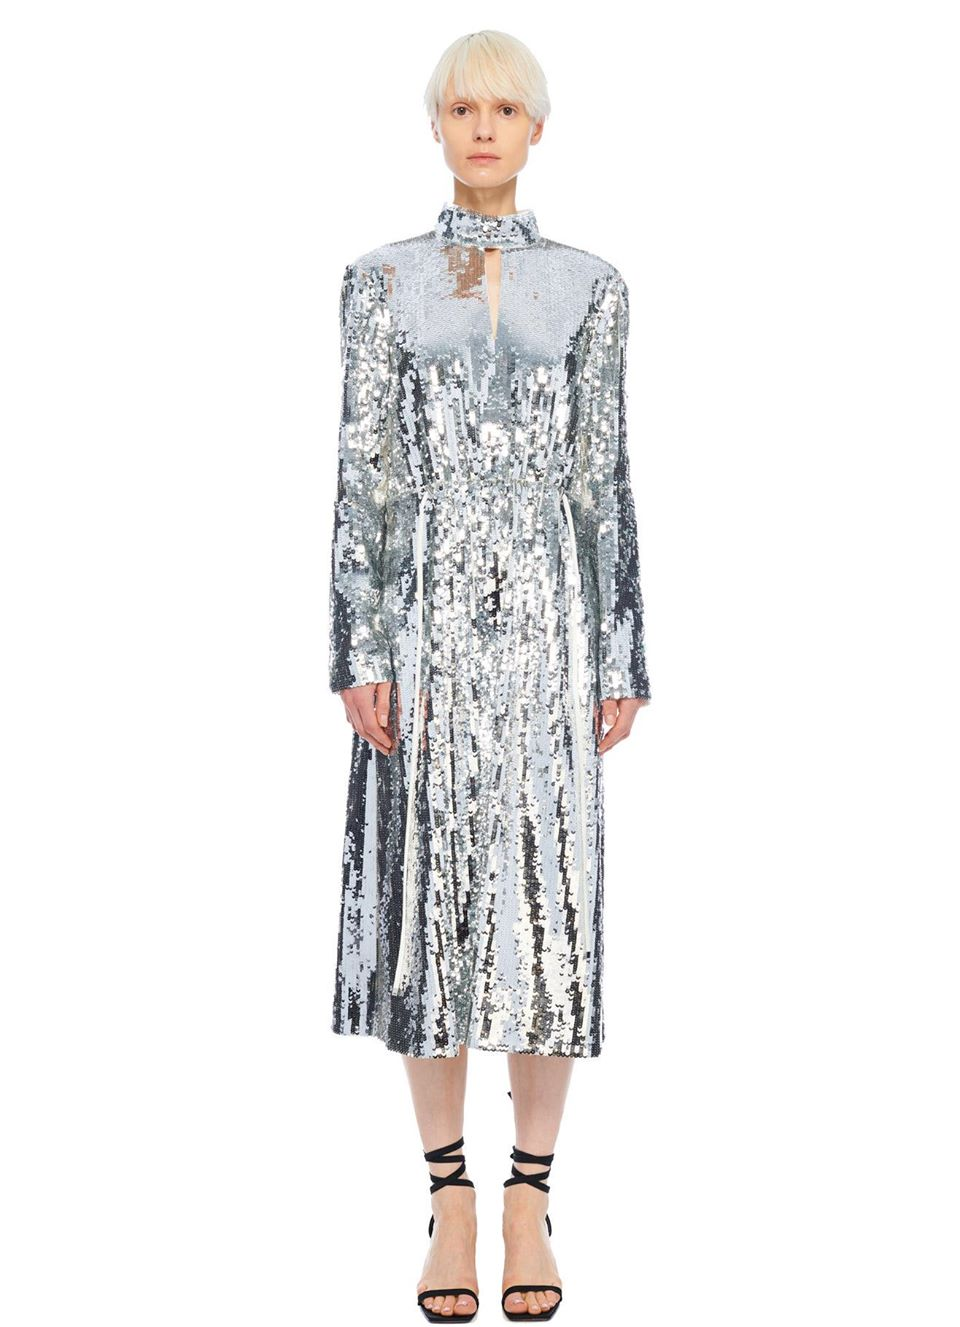 Tibi Sequin Dress